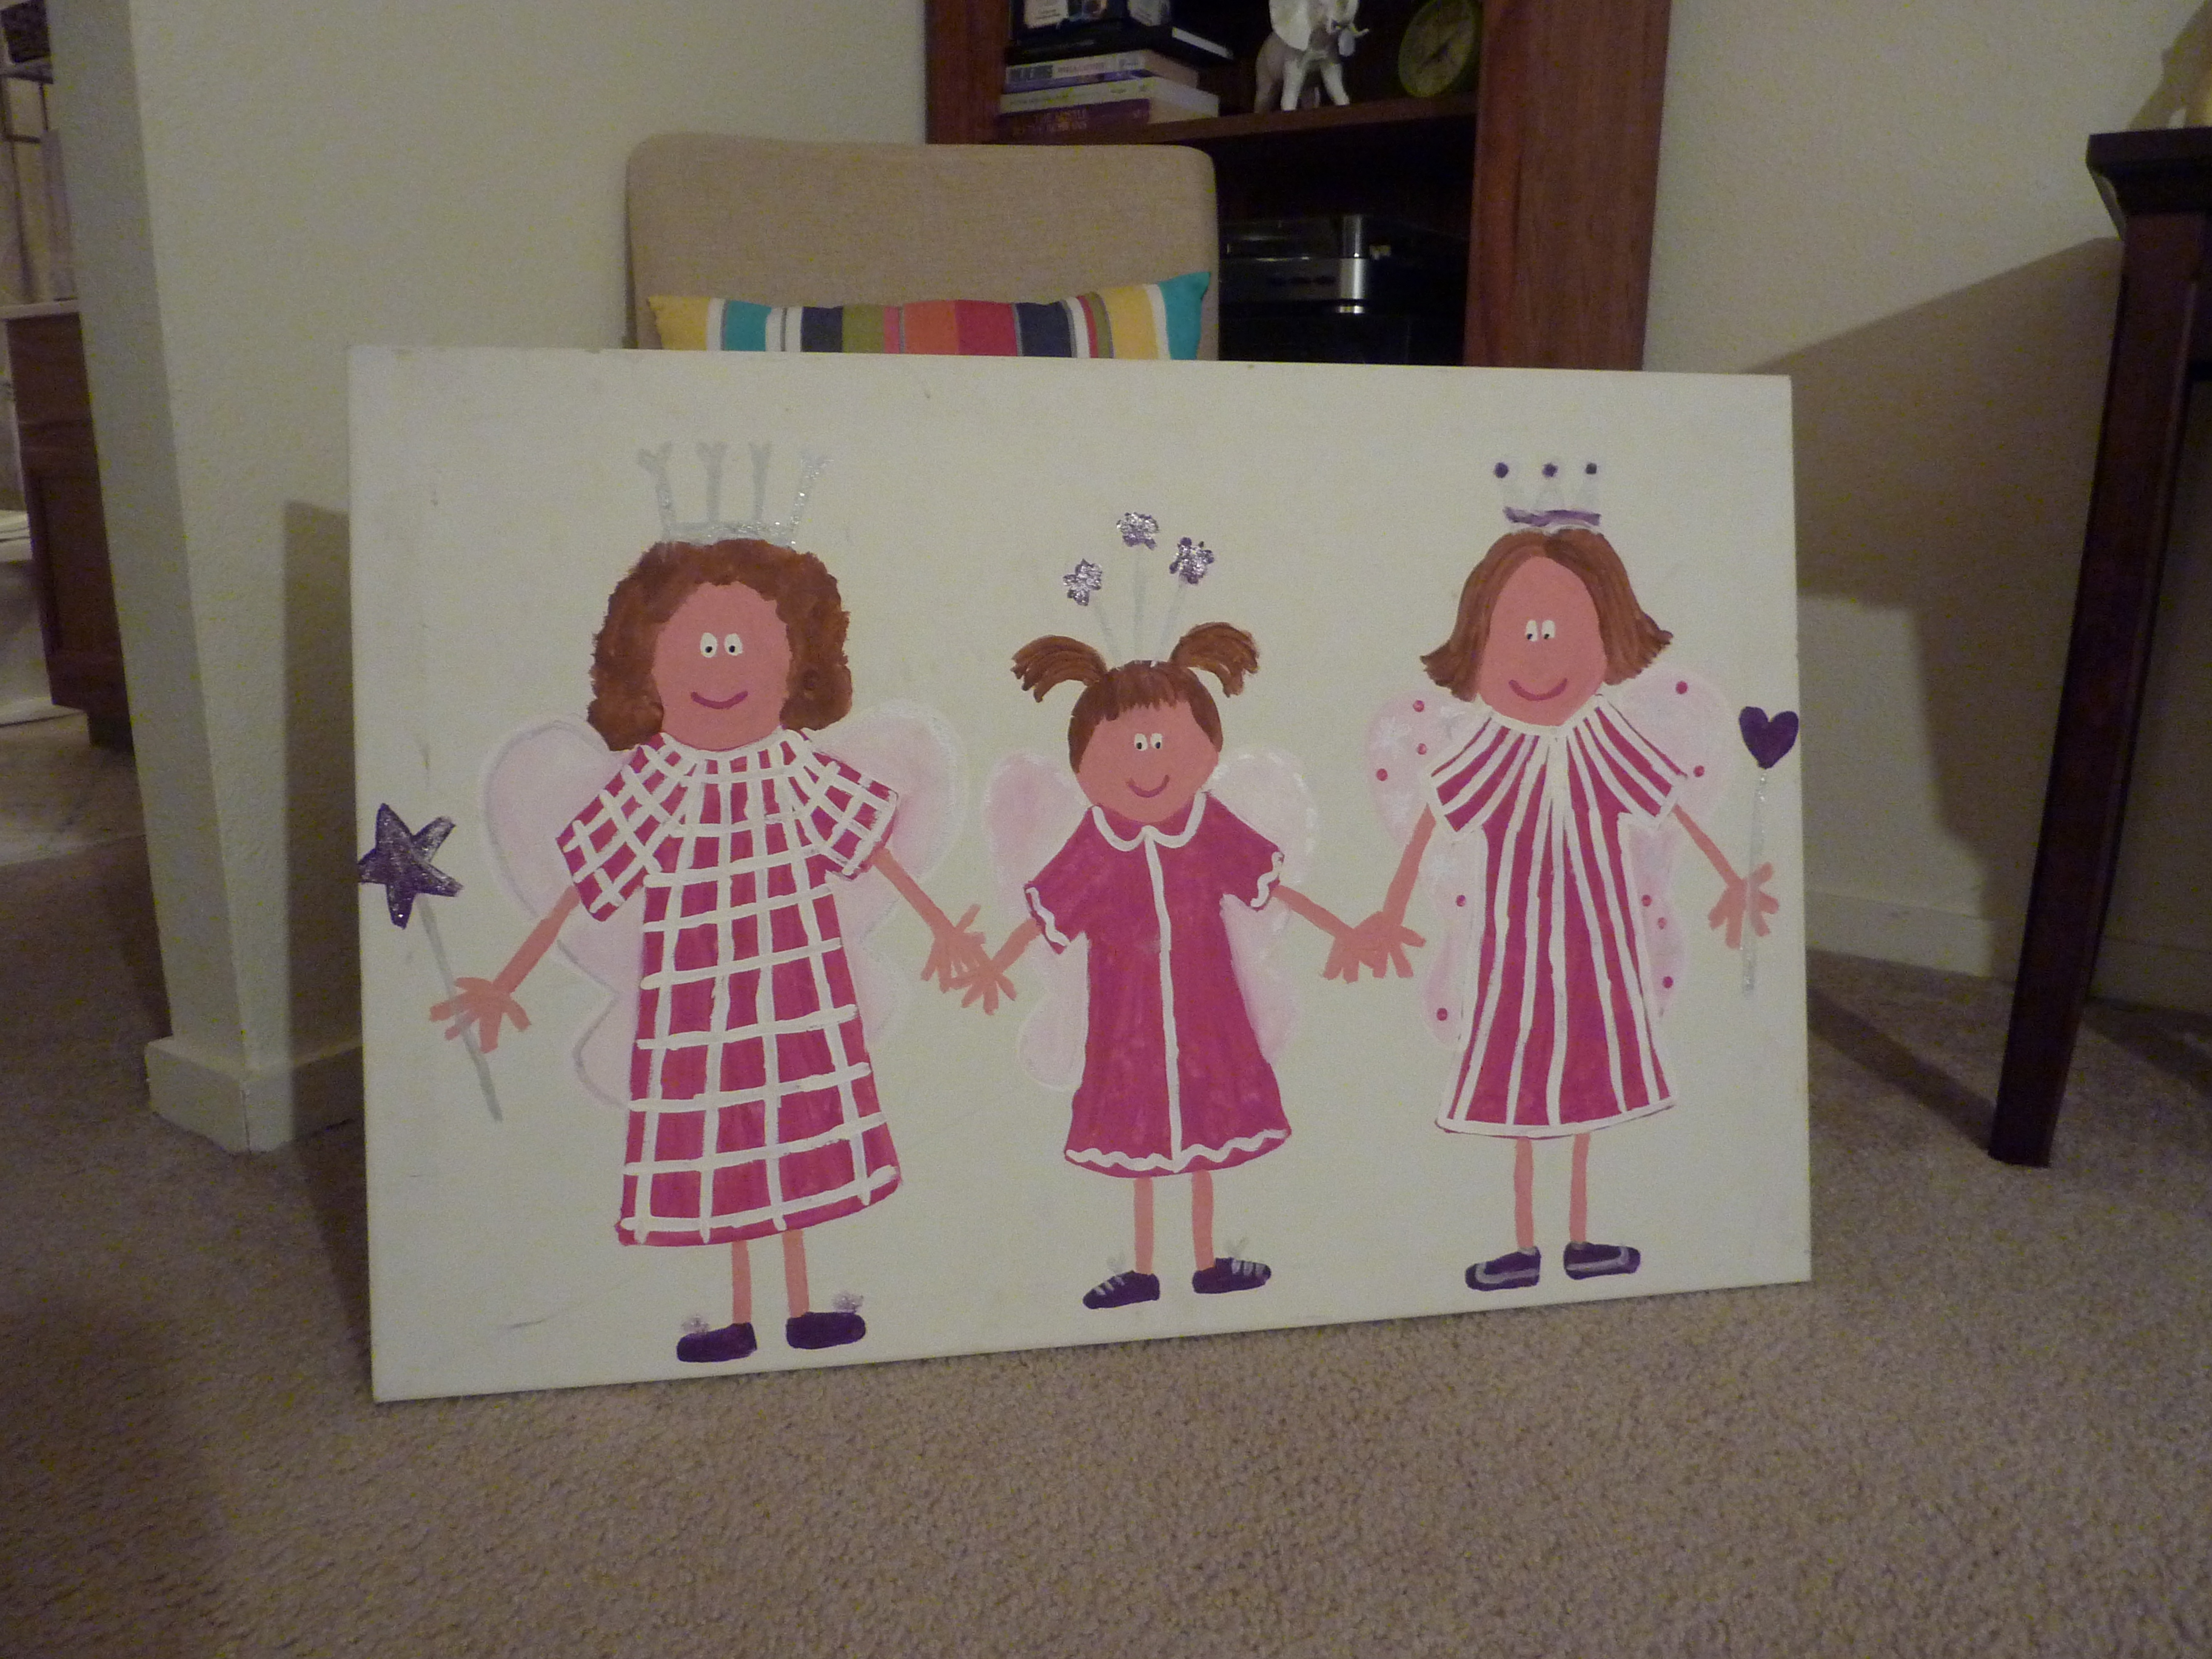 thrift store canvas with princesses